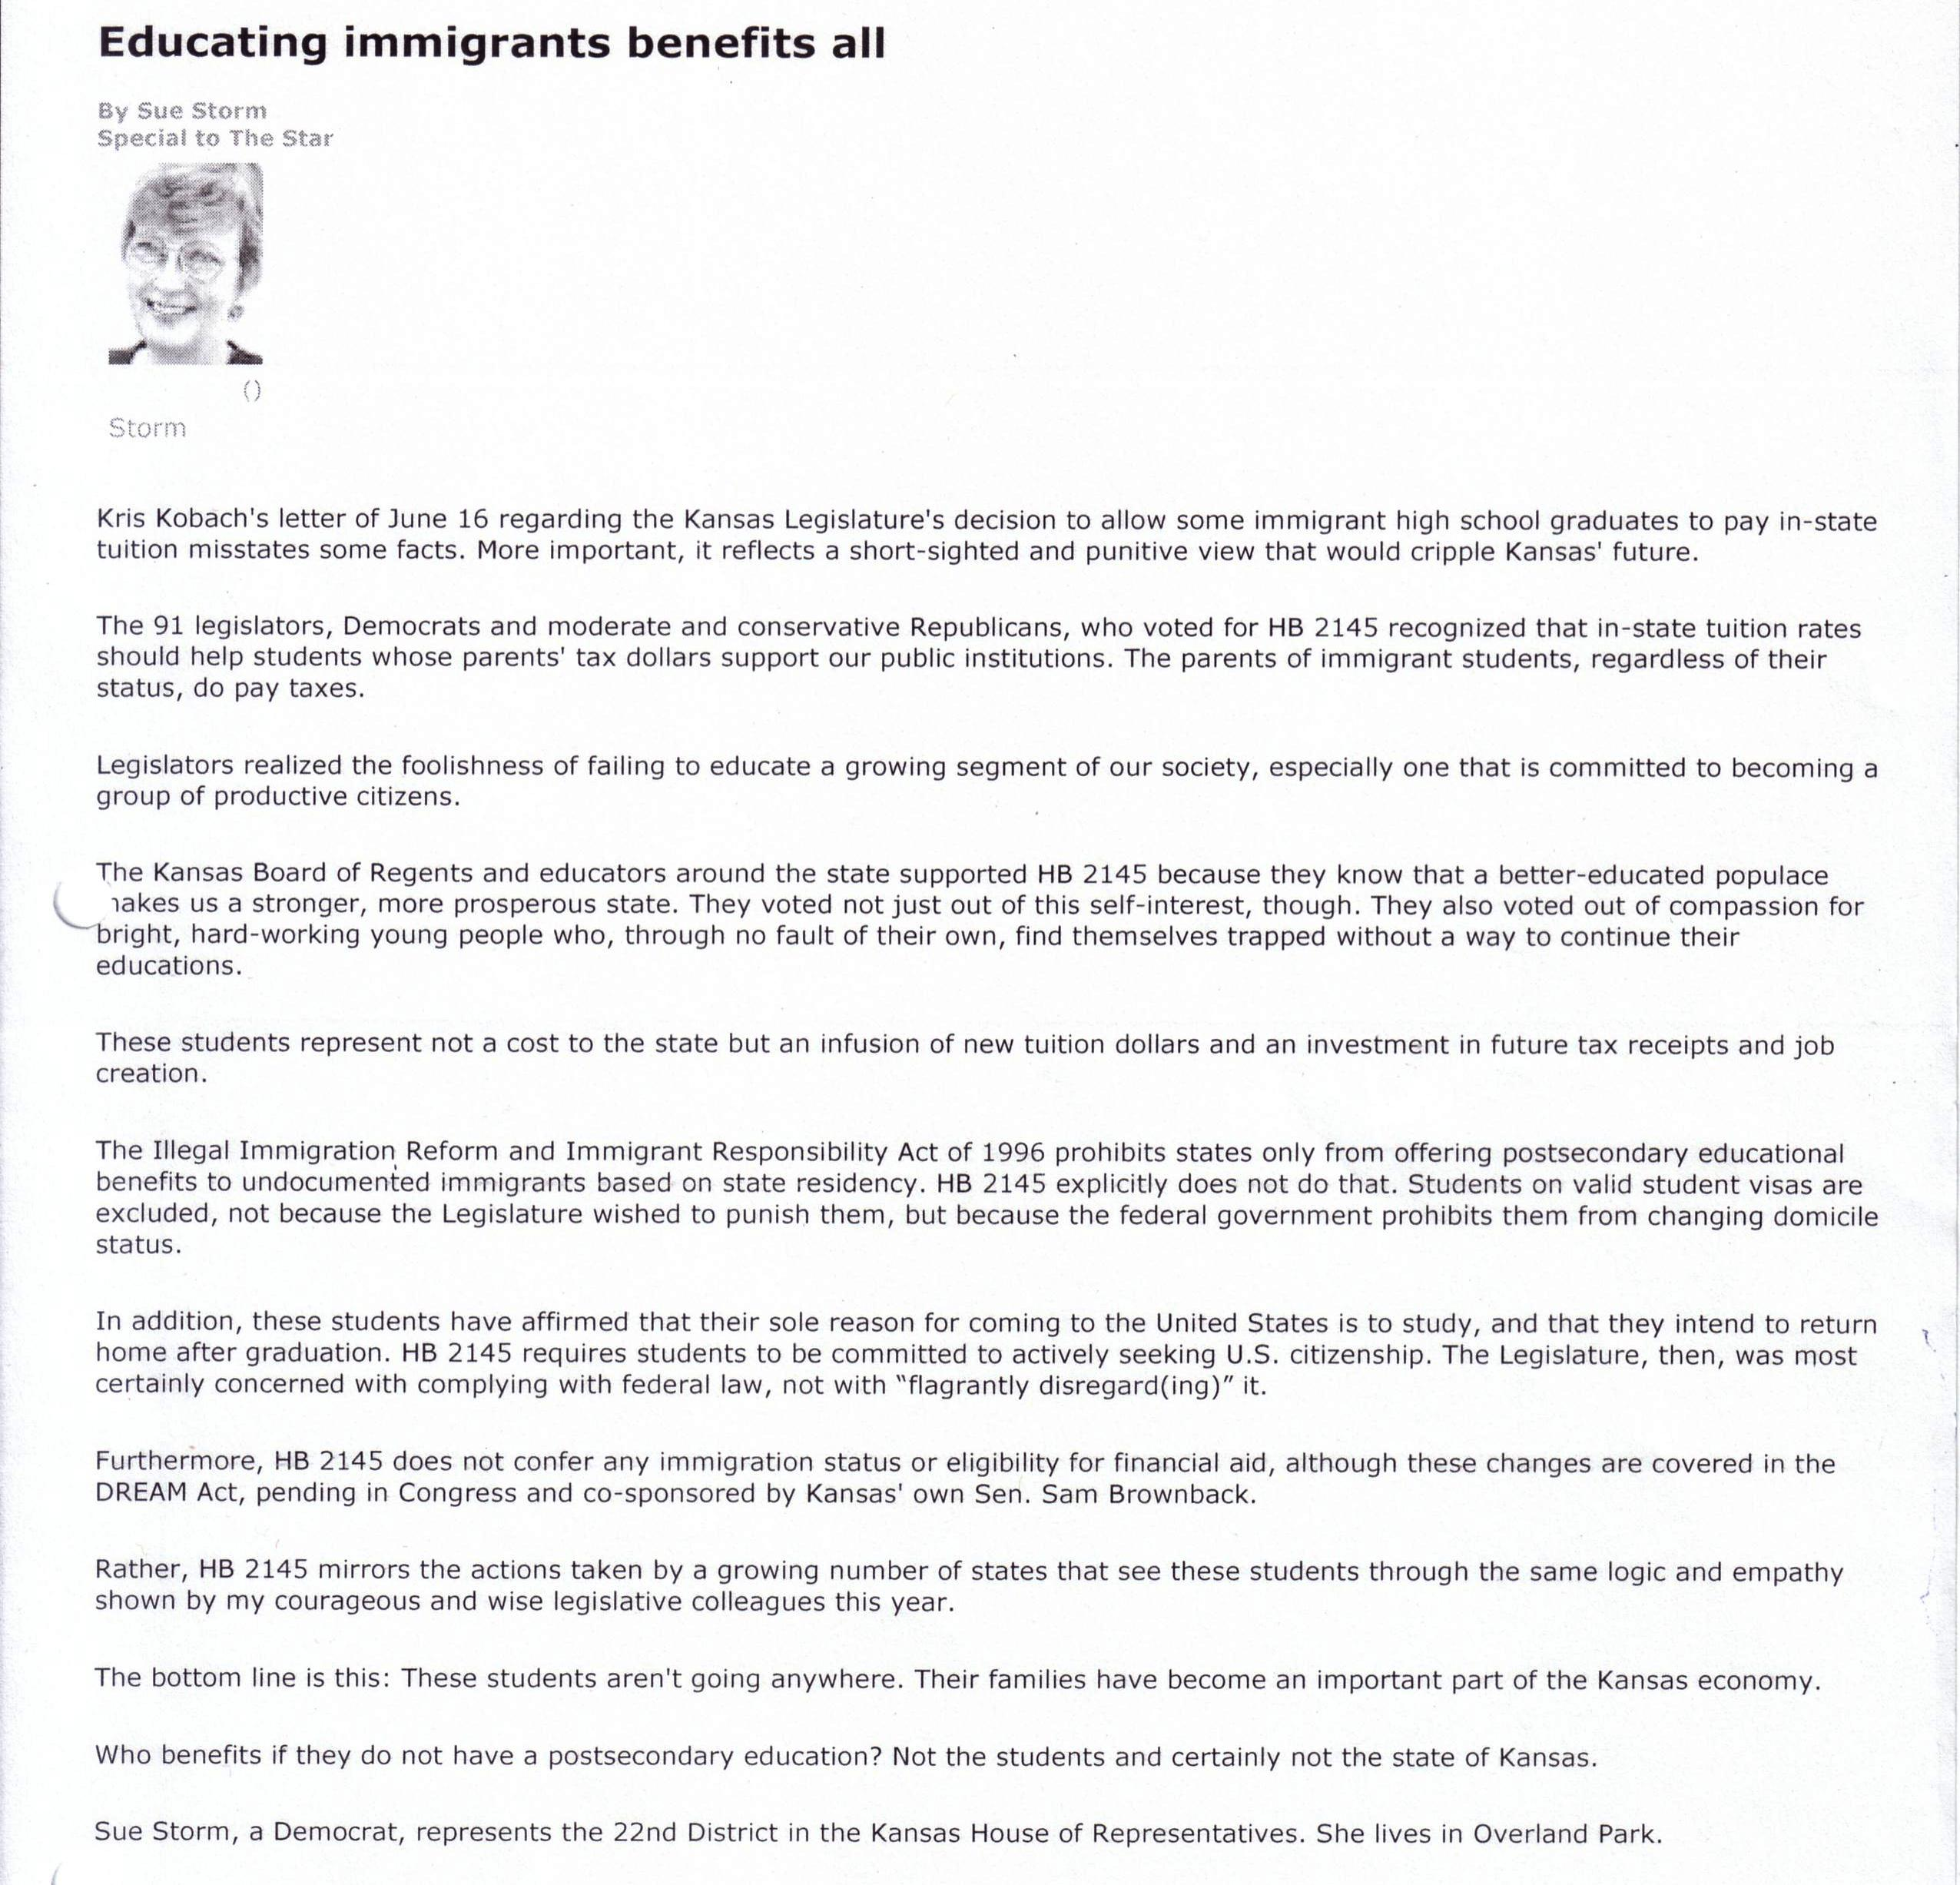 10 minute advocacy writing a letter to the editor classroom to educating immigrants benefits all thecheapjerseys